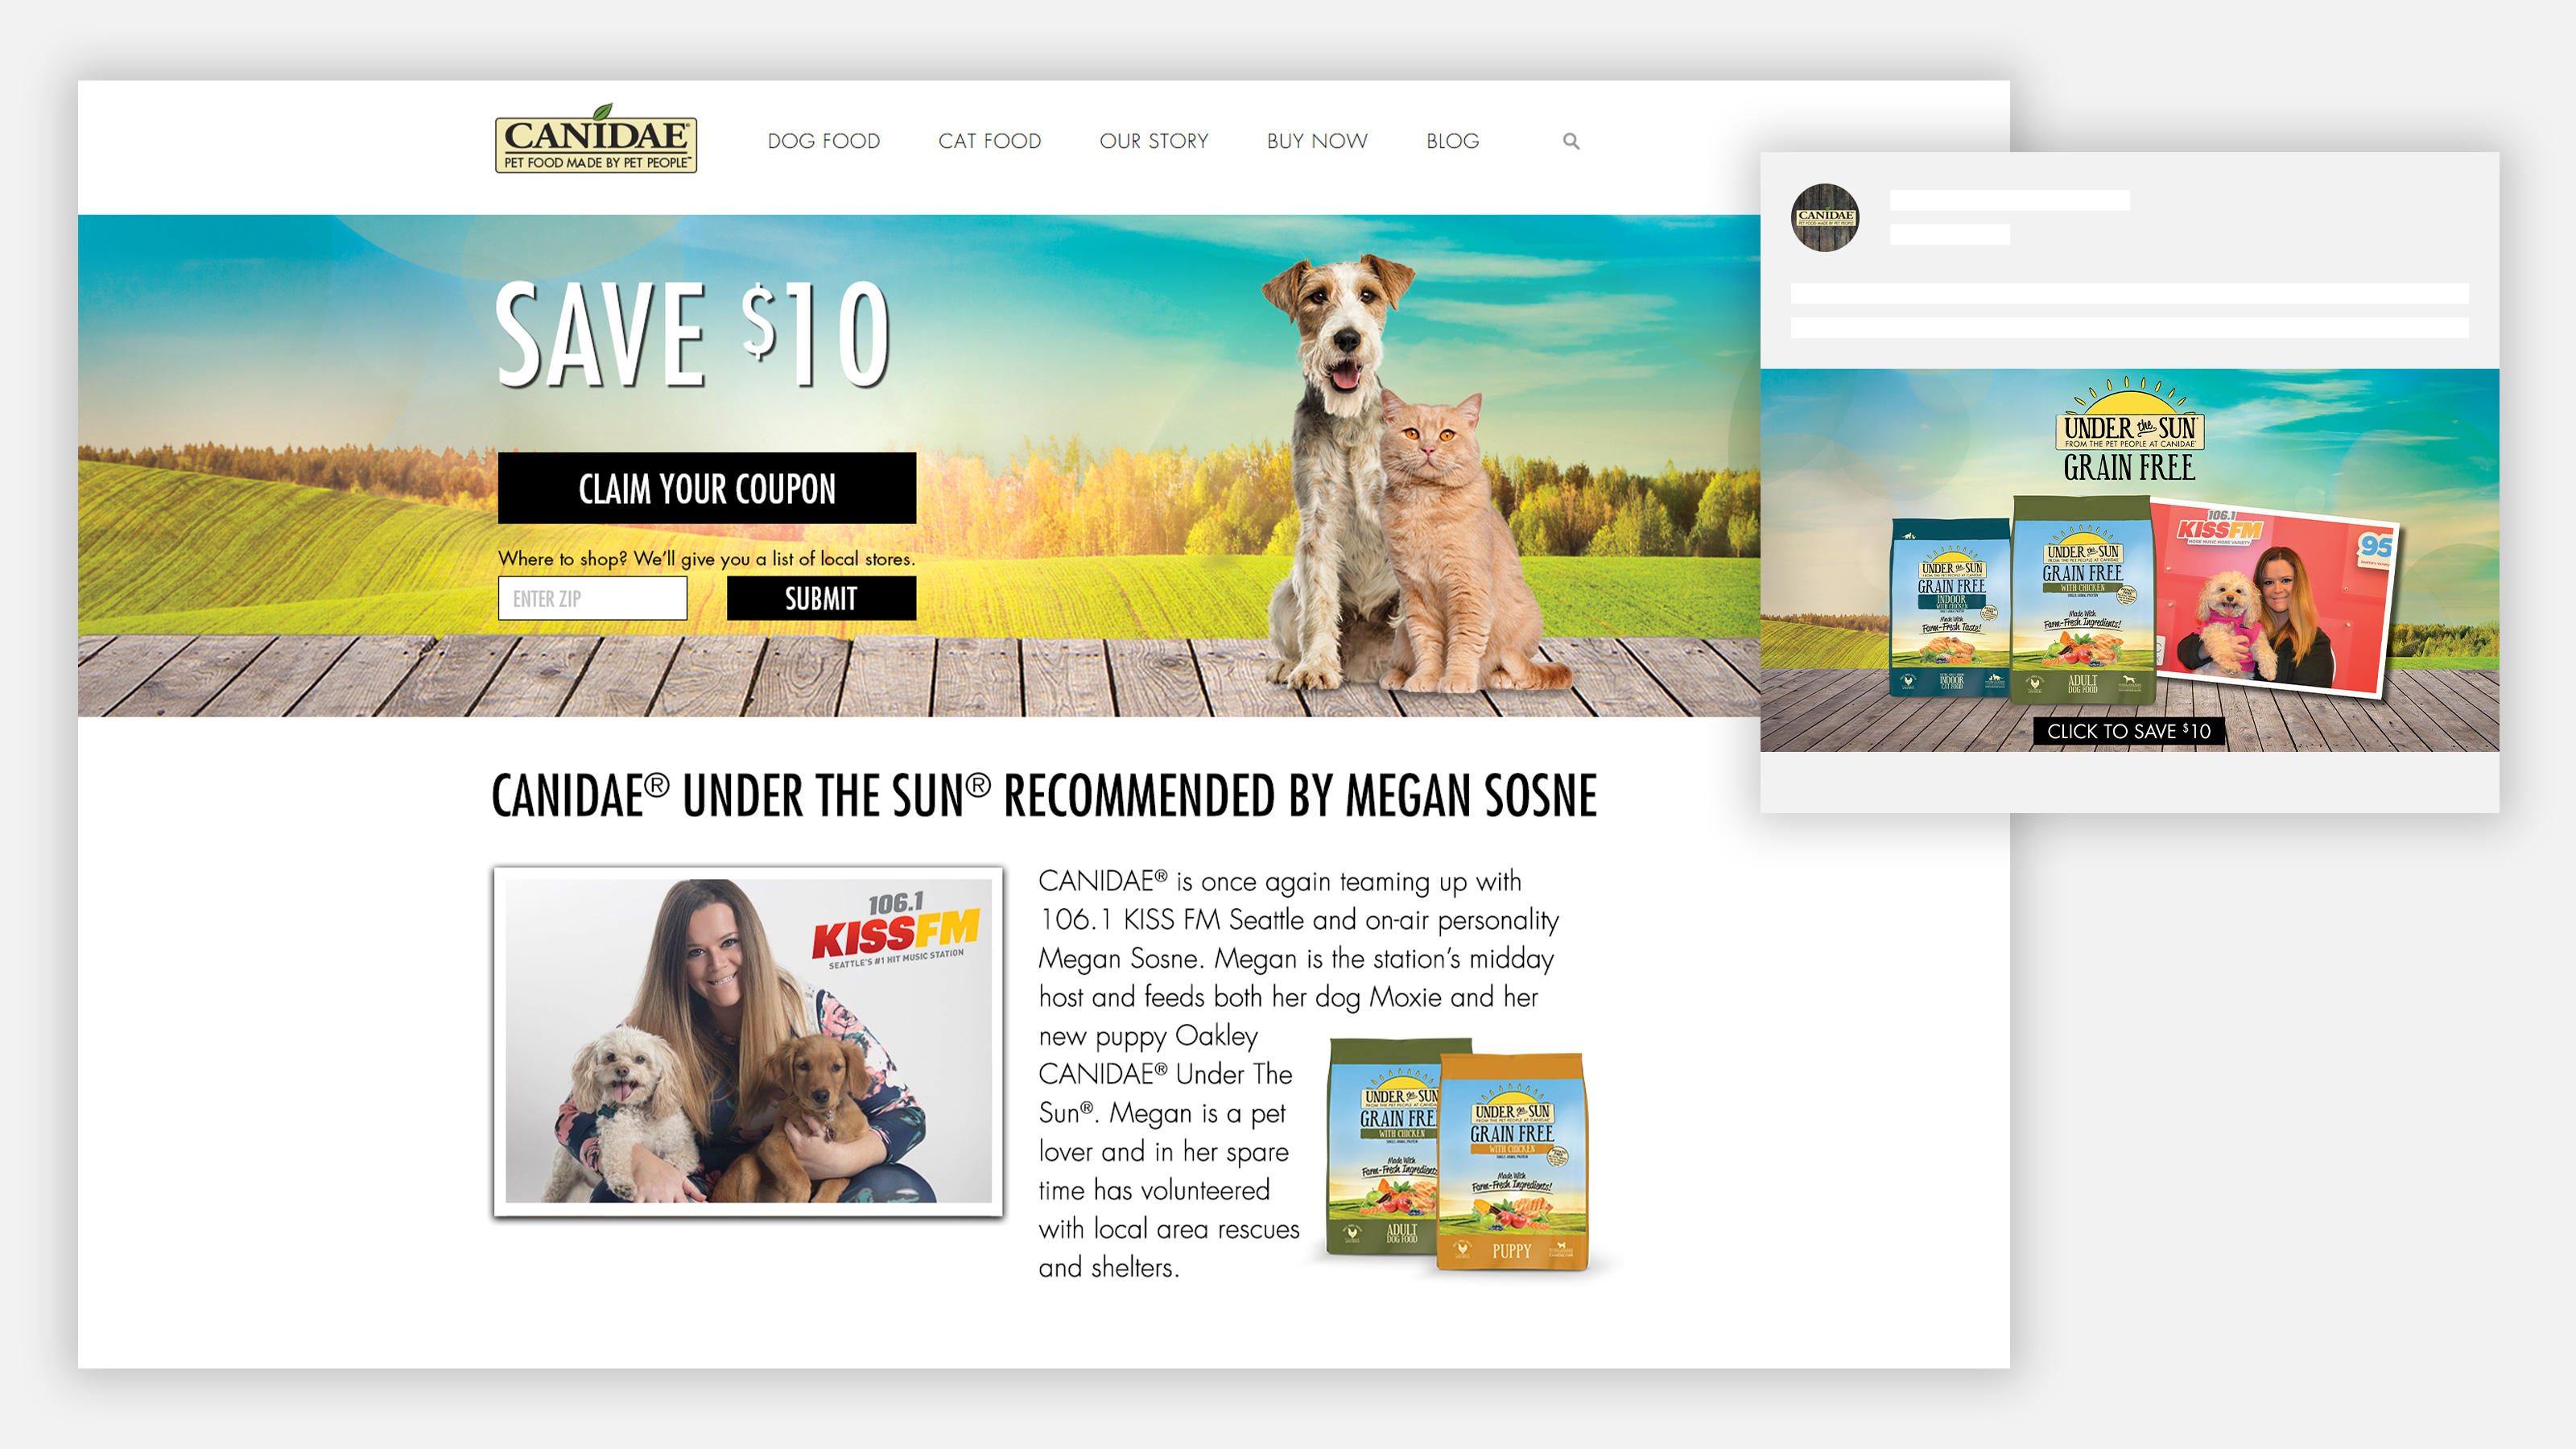 CANIDAE Pet Food iHeartRadio influencer landing page